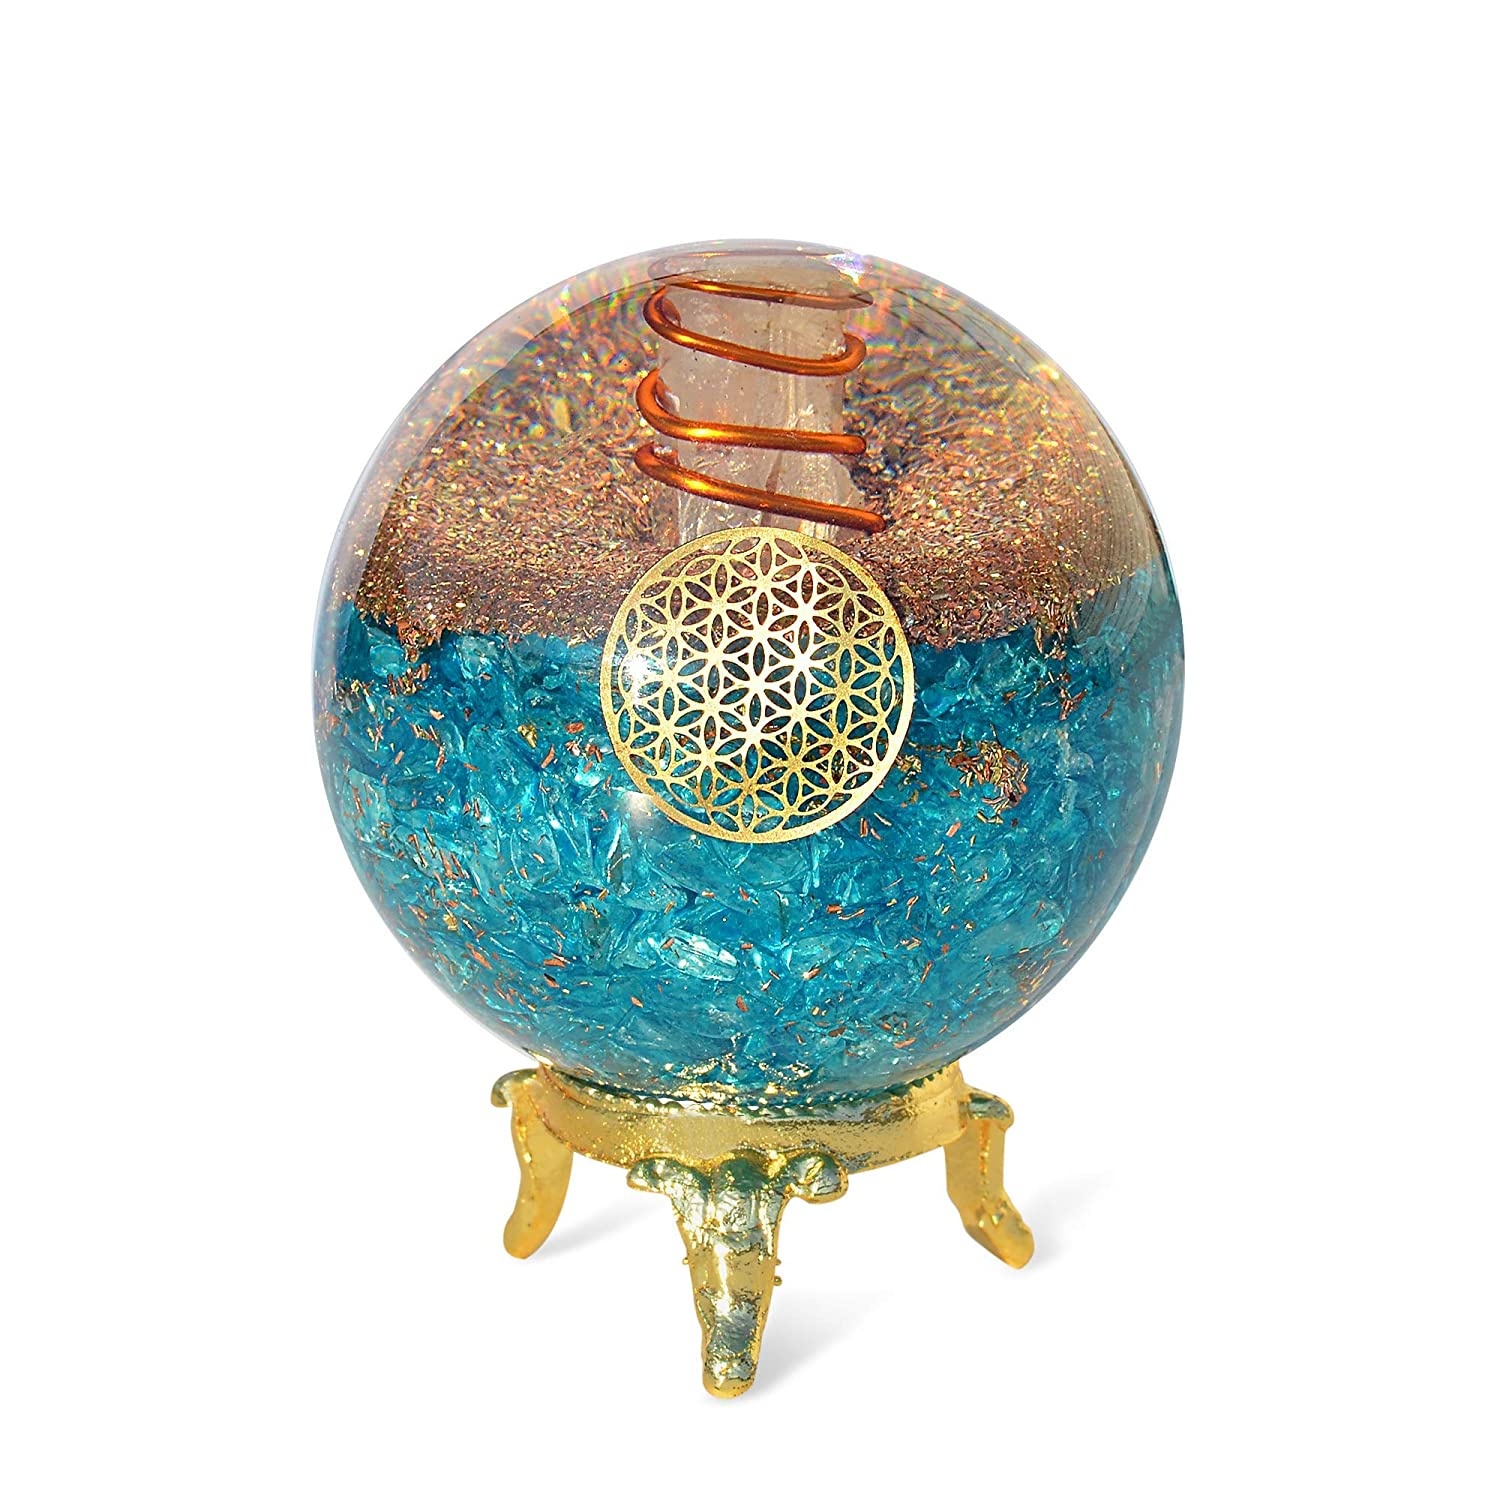 amazon com orgonite crystal blue aquamarine crystal ball with stand for positive energy emf protection and chakra balancing with flower of life symbol to promote purpose serenity and courage handmade orgonite crystal blue aquamarine crystal ball with stand for positive energy emf protection and chakra balancing with flower of life symbol to